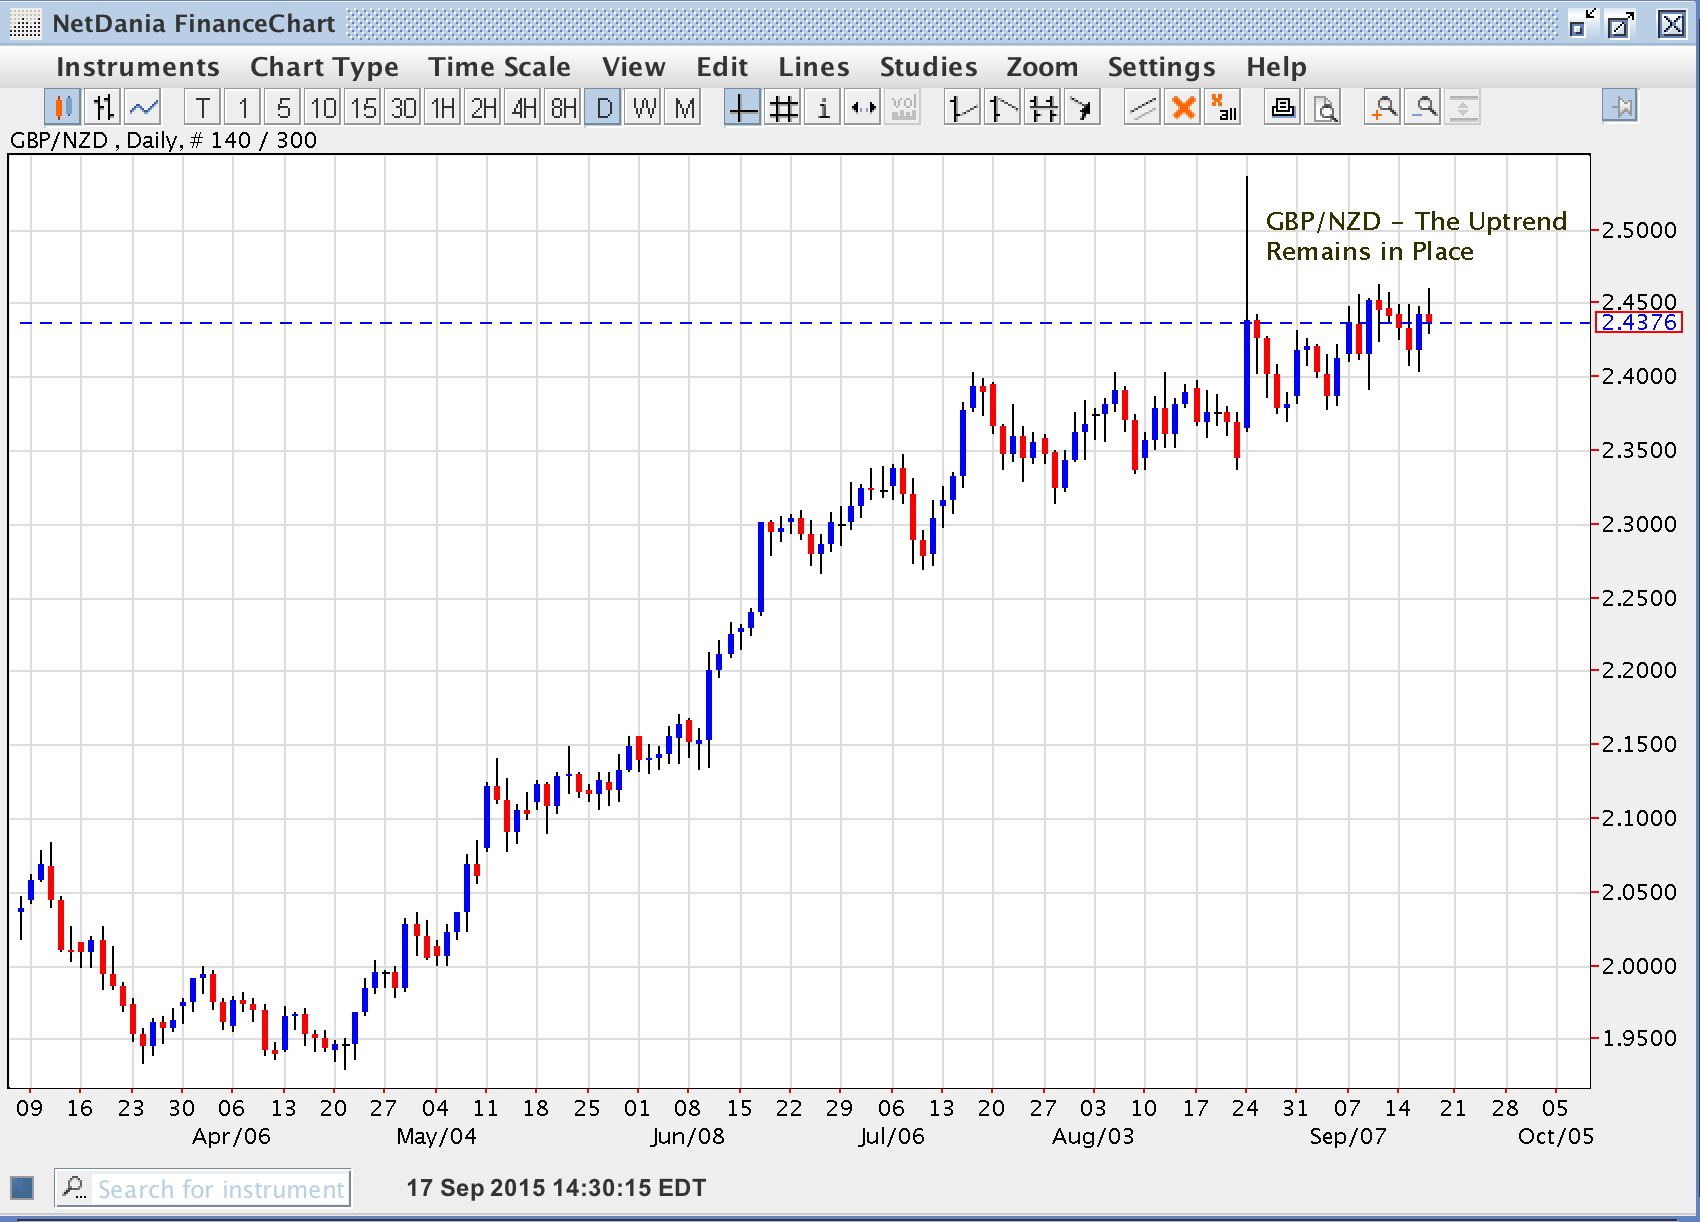 GBP/NZD The Uptrend Remains in Place